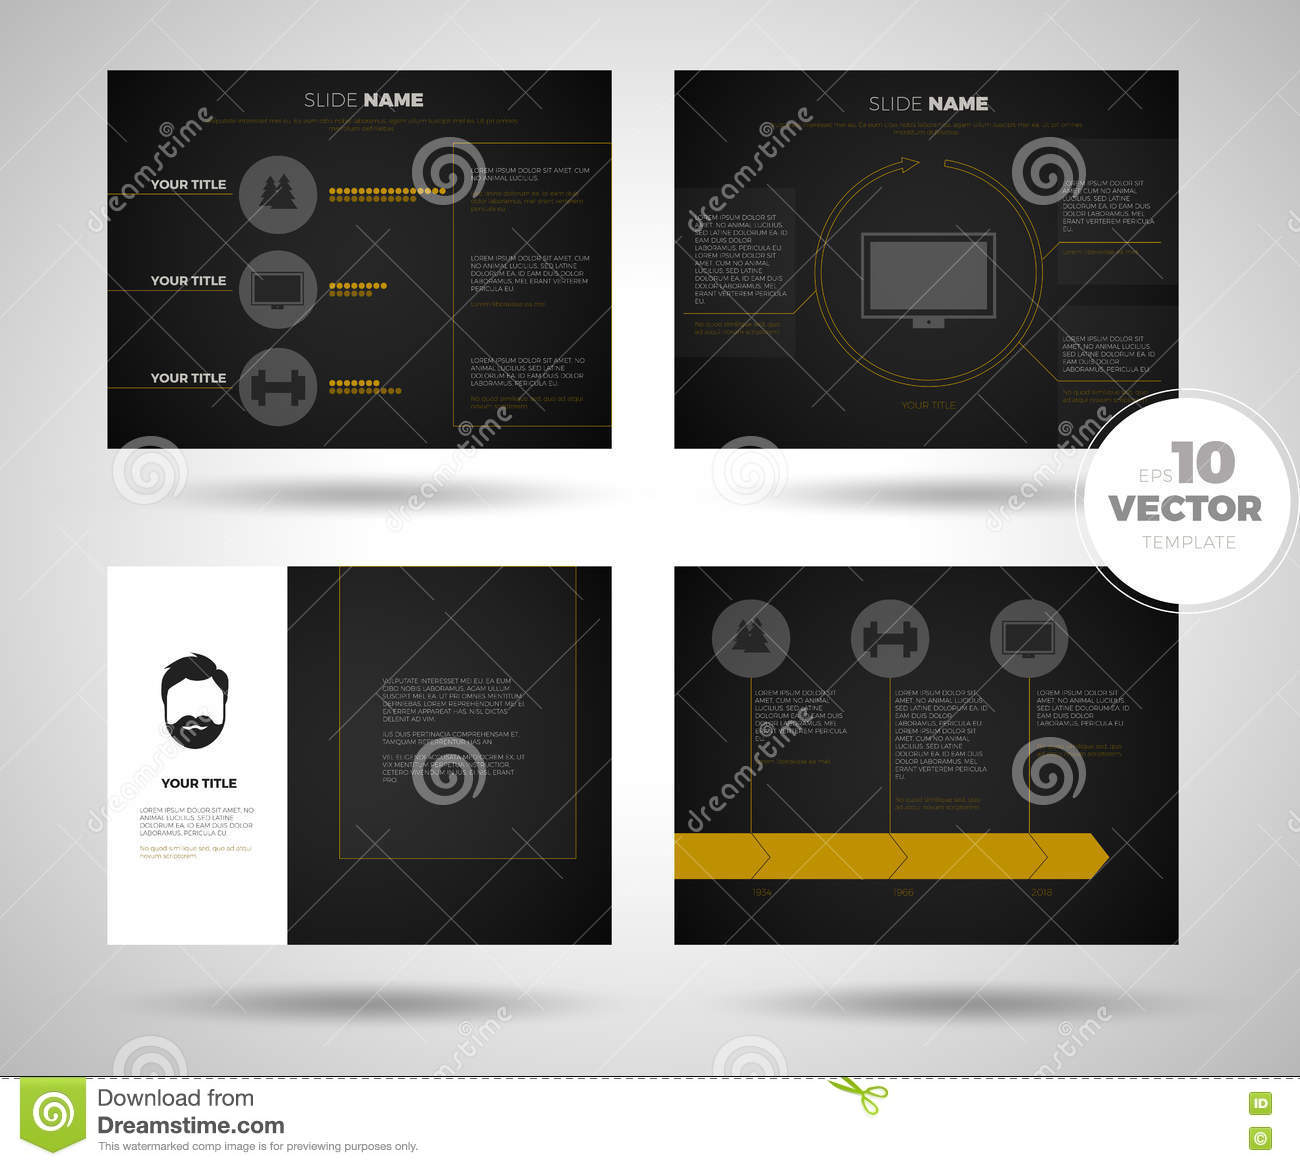 Black infographic powerpoint template design backgrounds business business presentation template setpowerpoint template design backgrounds royalty free stock image toneelgroepblik Images